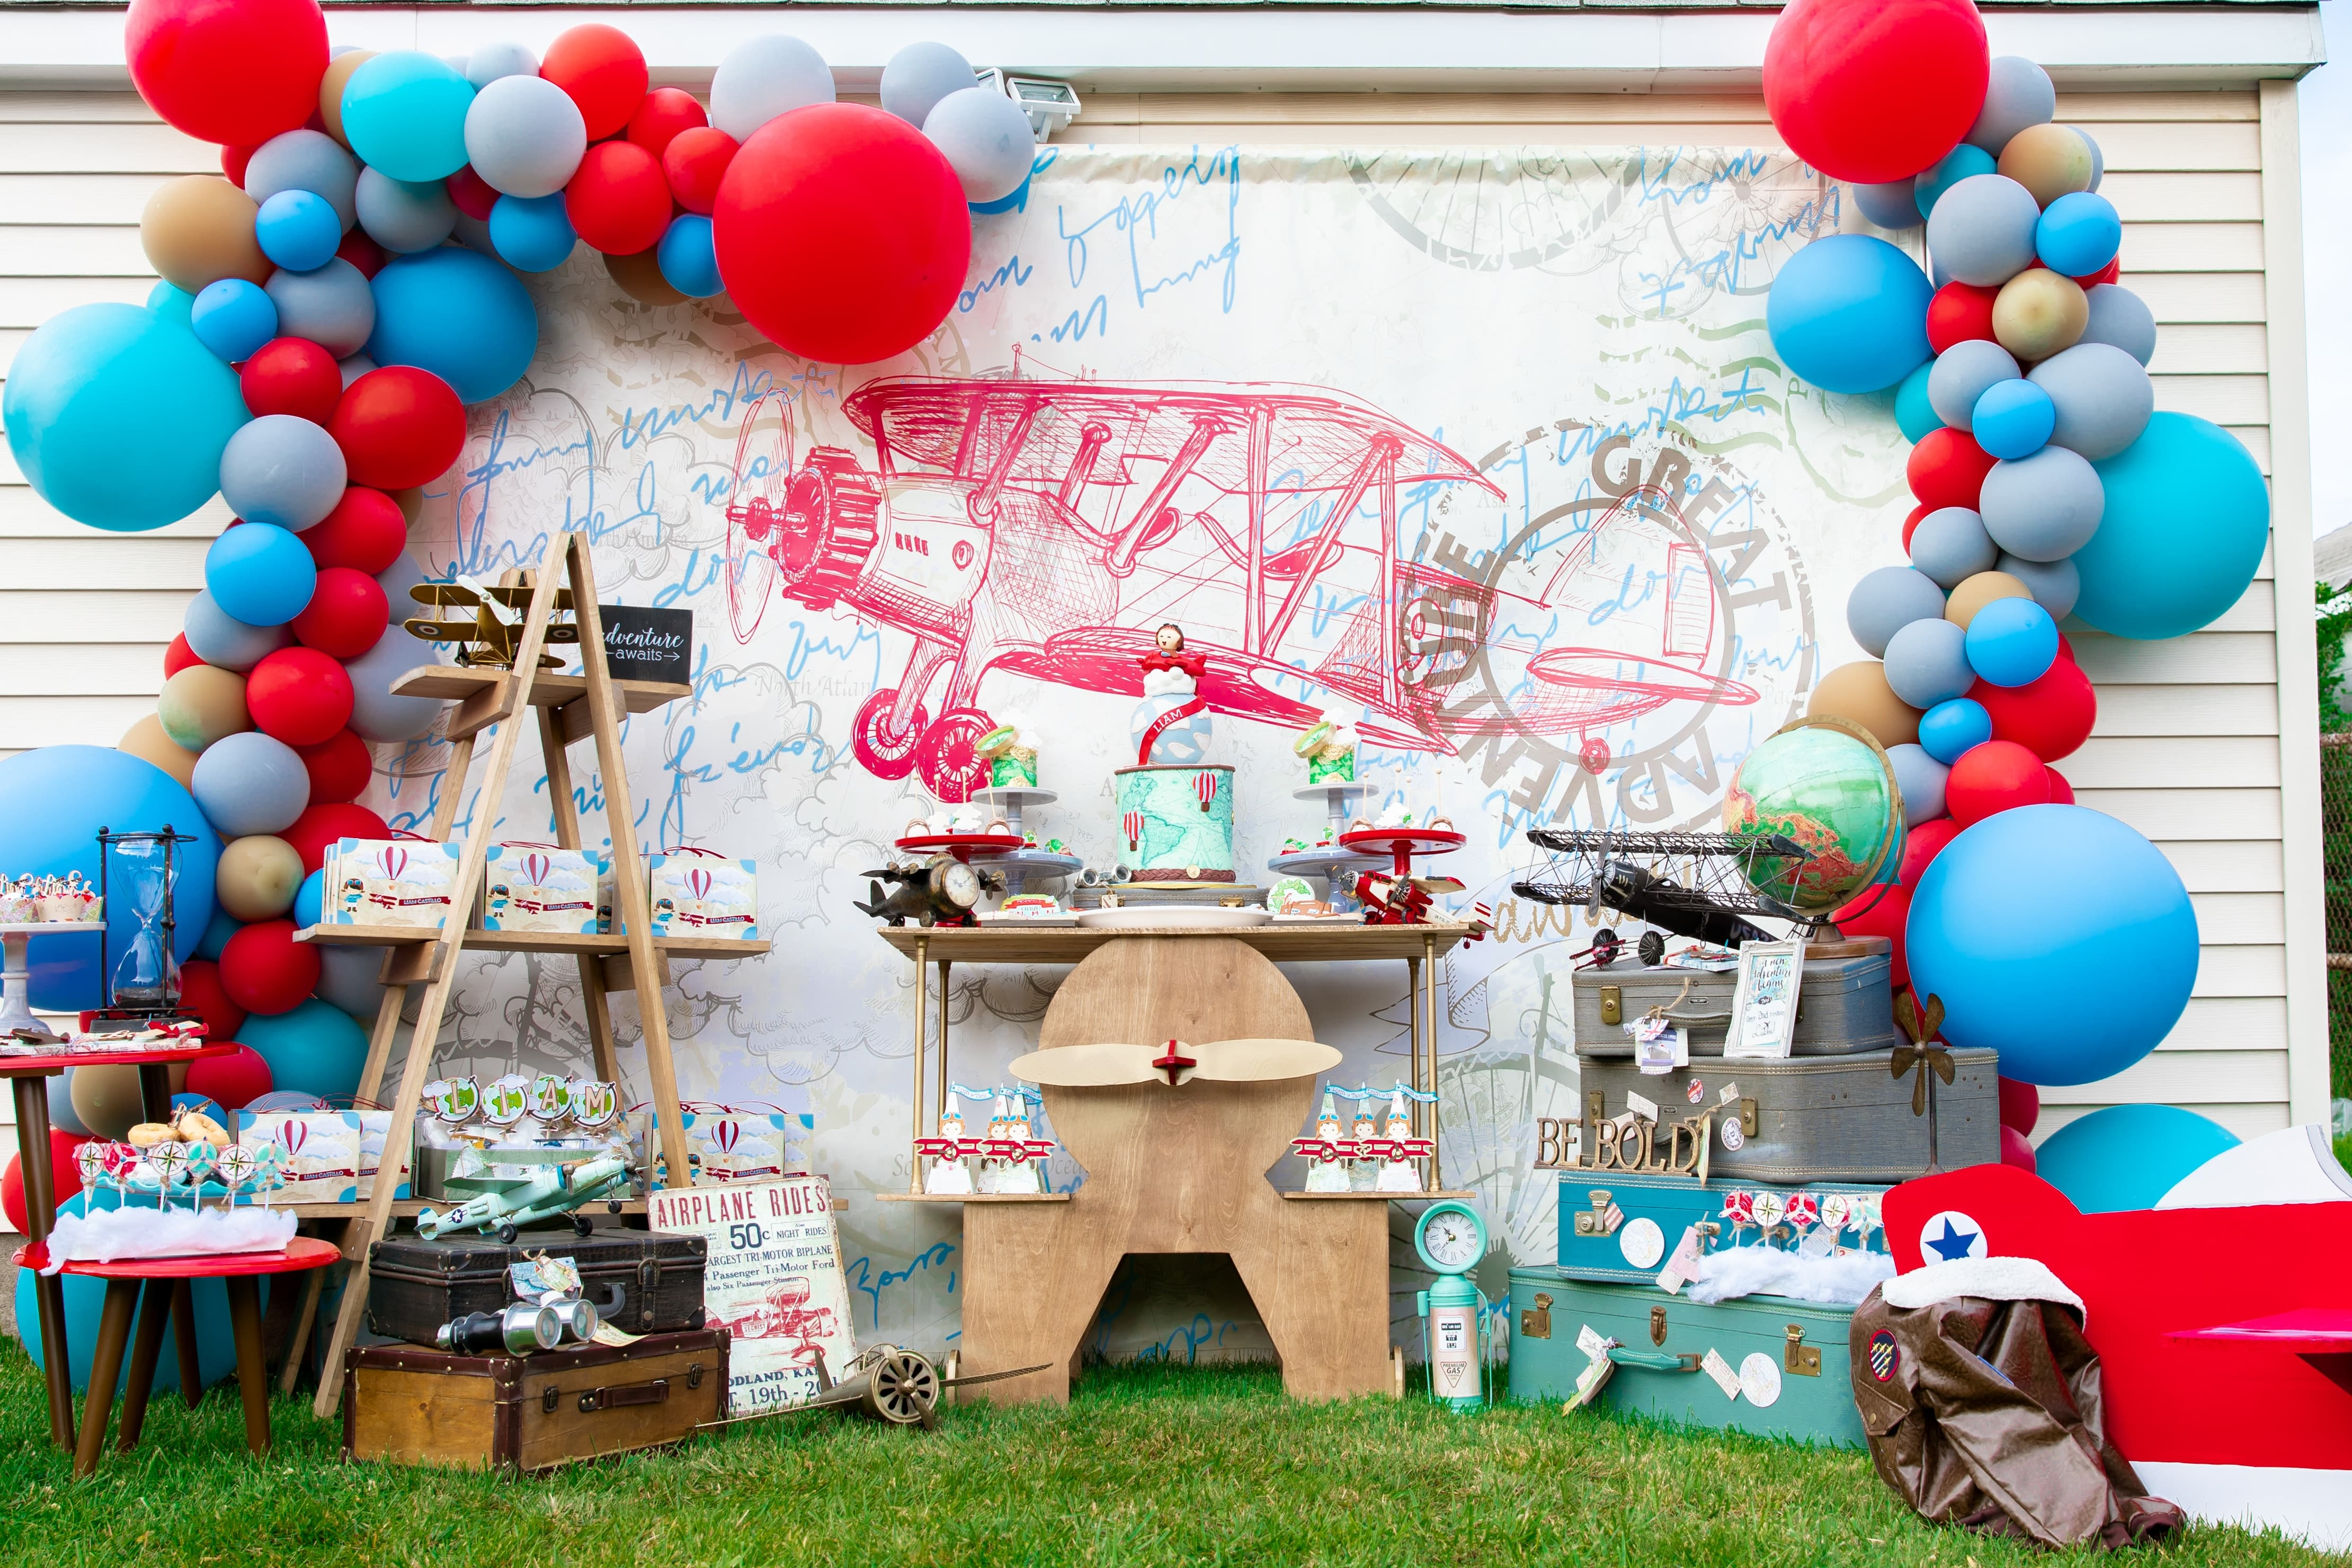 Paarteezcom Party Ideas Blog For All Occasions And Celebrations